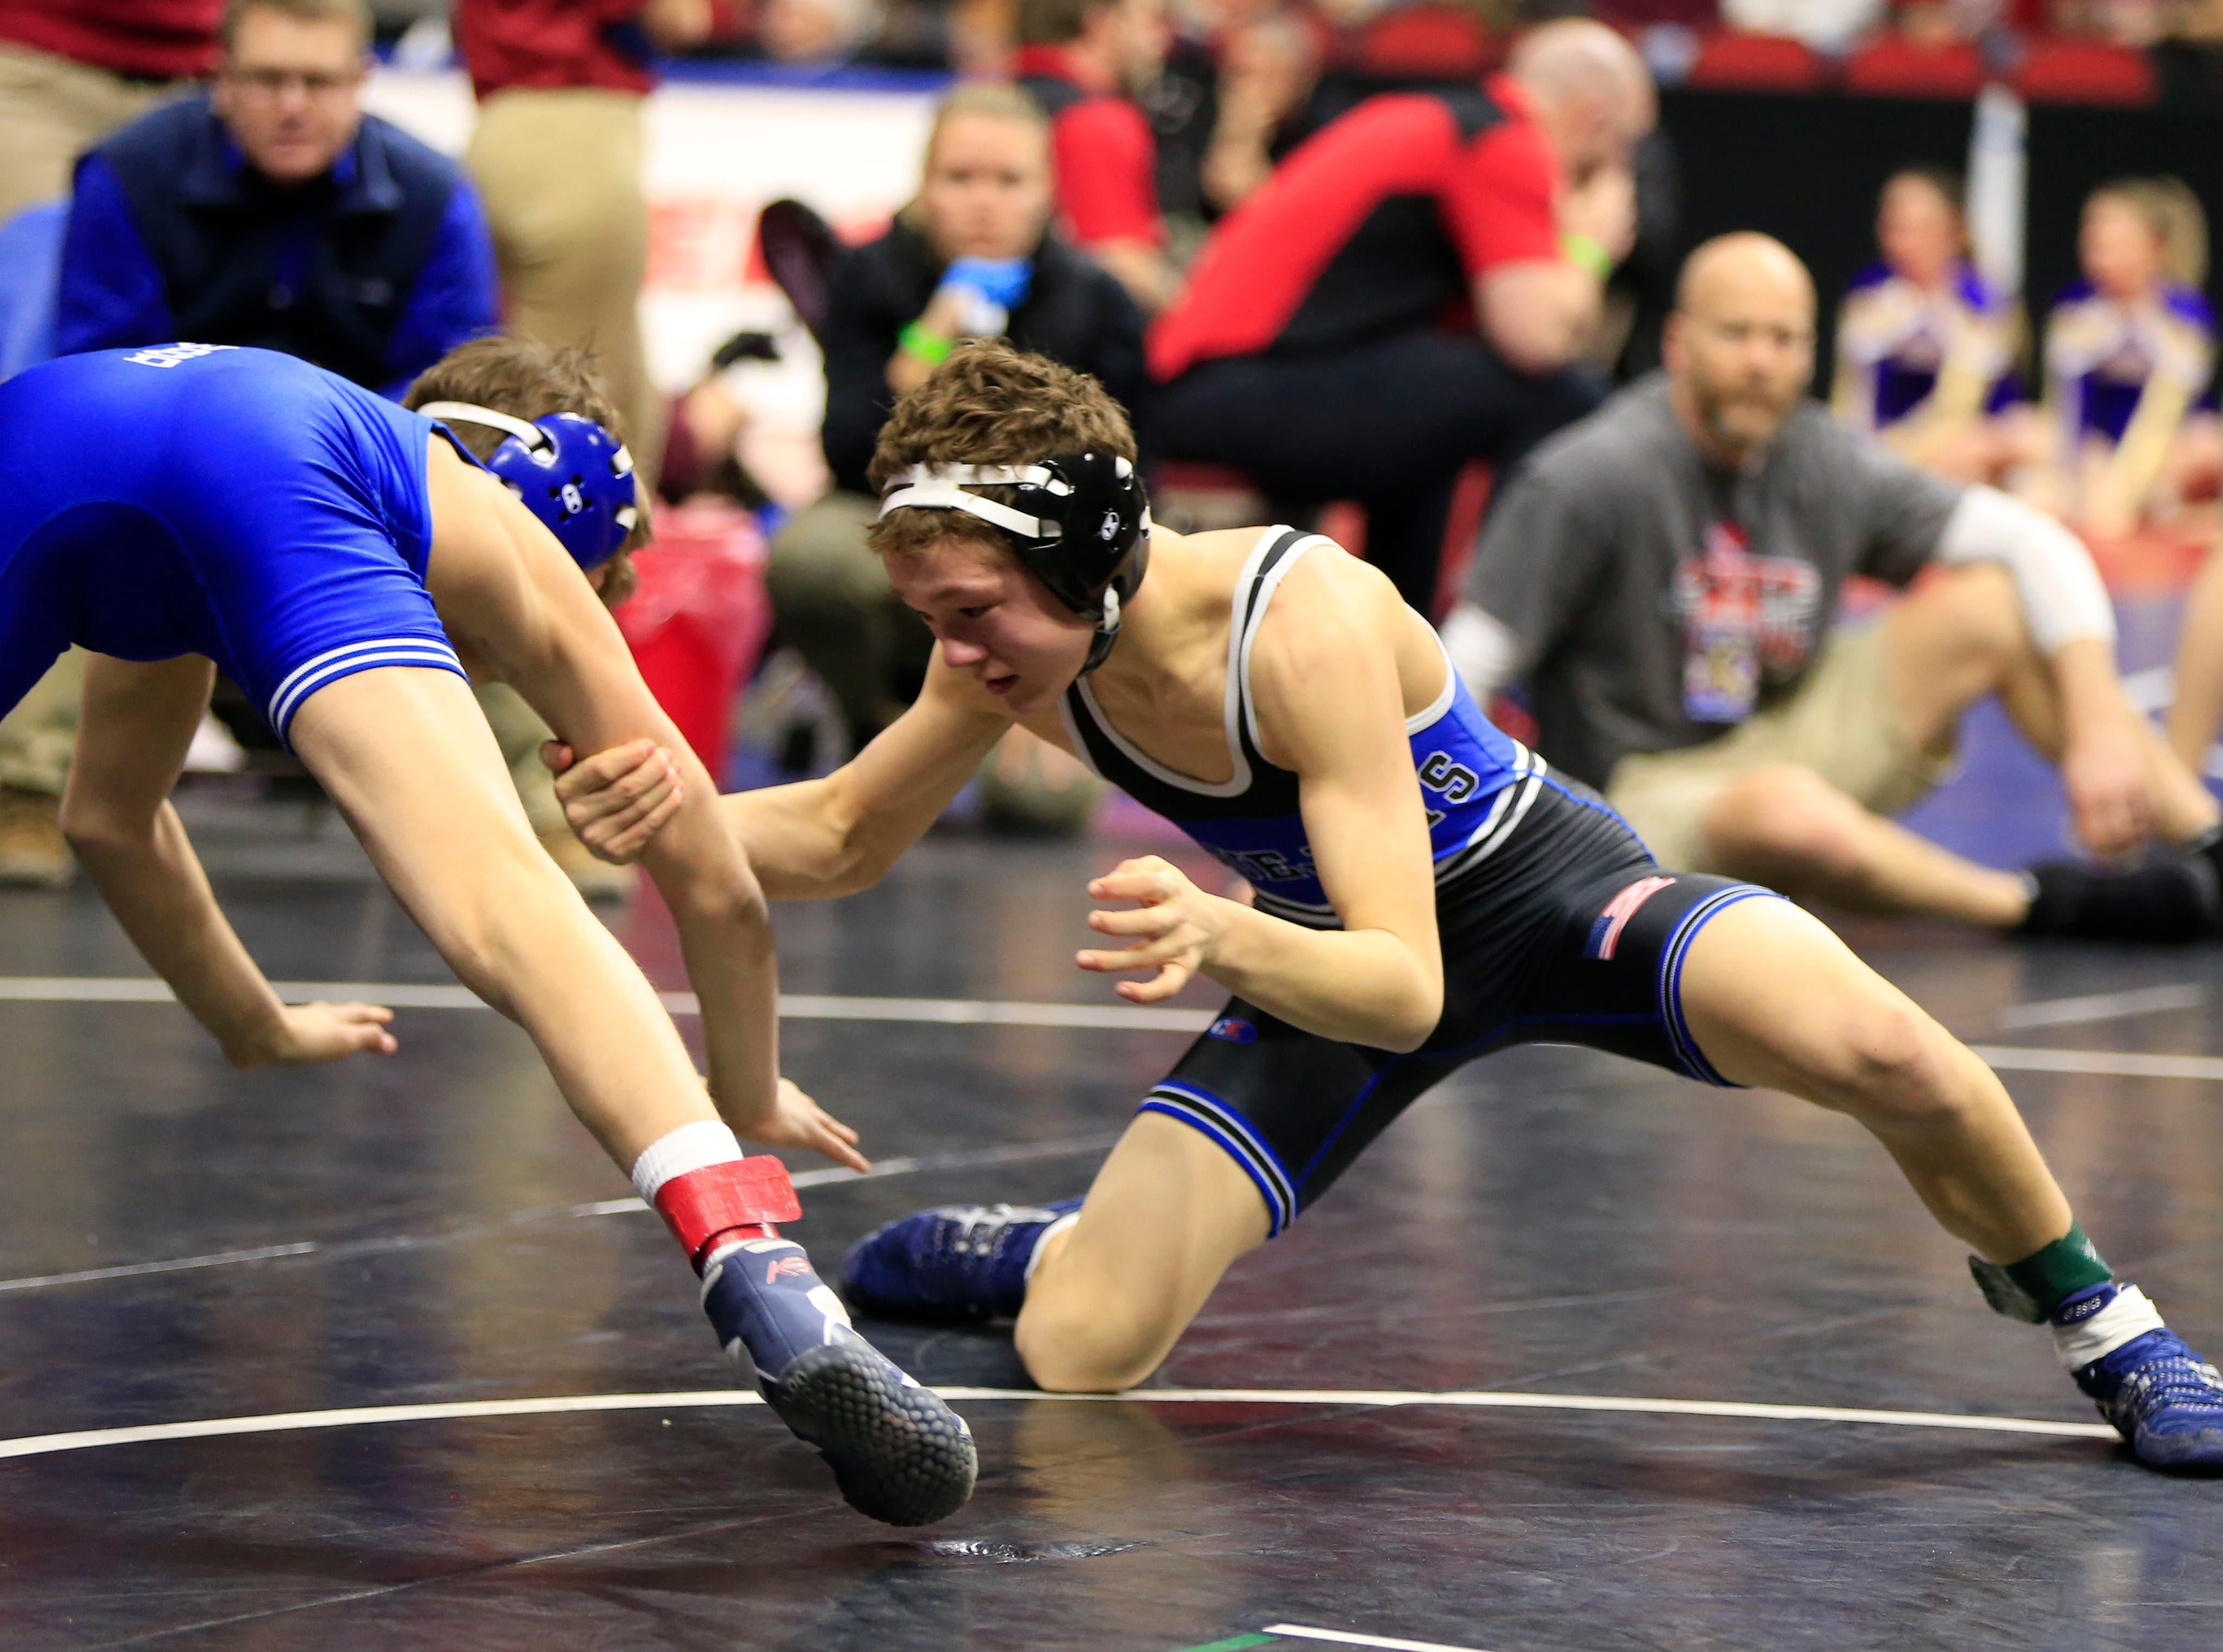 Carter Fousek of Crestwood, Cresco defeats Rylie Anderson of Bondurant-Farrarduring a 106 Lb 2A quarterfinal match at the state wrestling tournament Friday, Feb. 15, 2019.